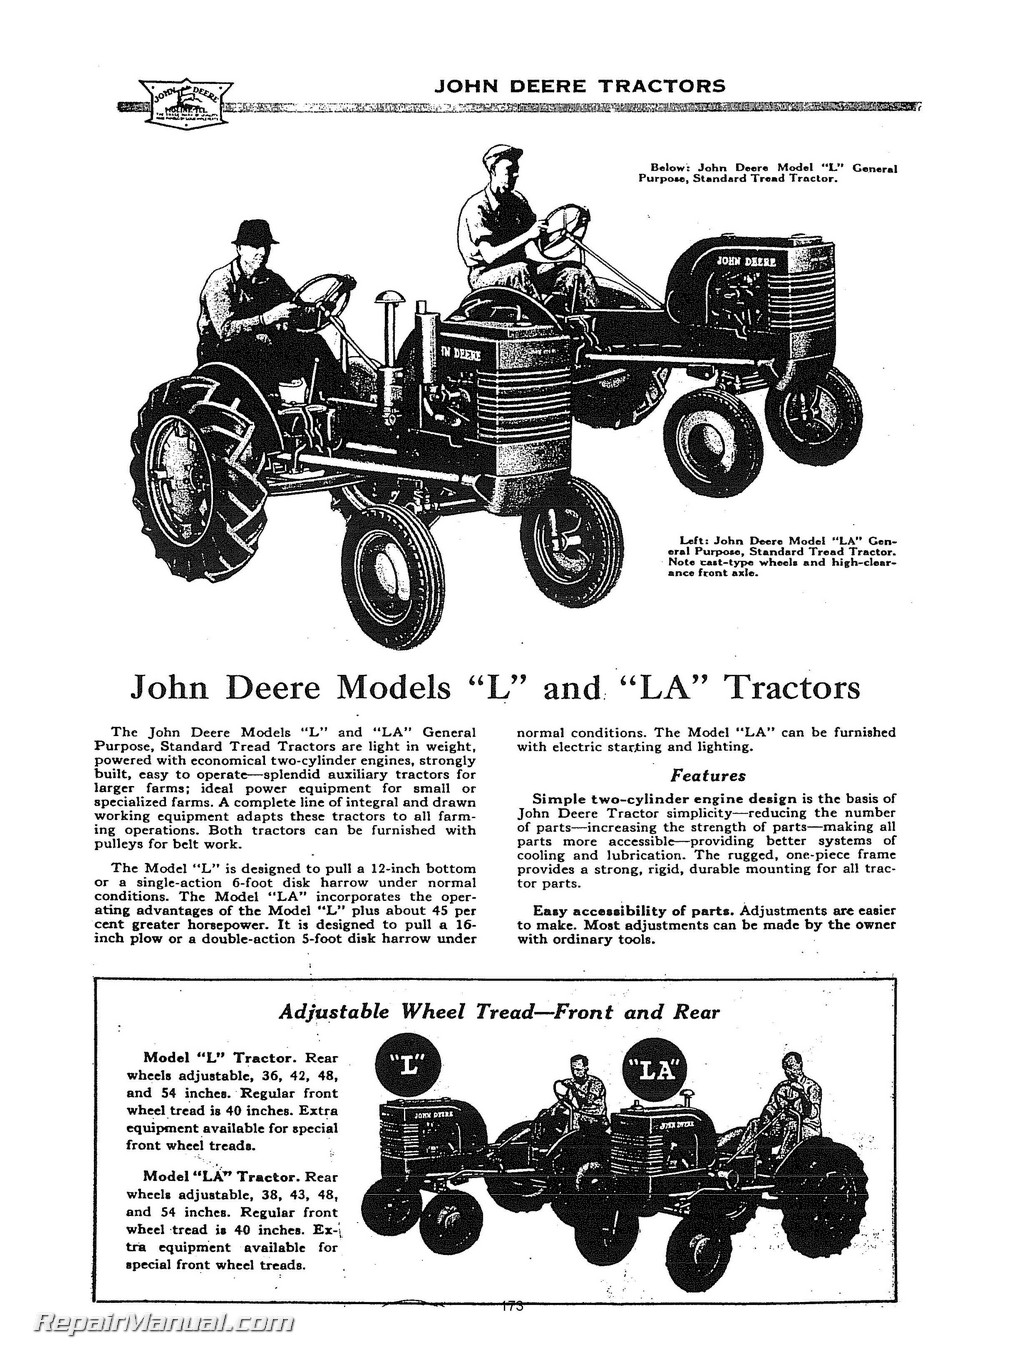 john deere l la li y 62 tractor service manual | ebay john deere schematics engine 675cc john deere l100 engine parts diagram electrical wiring